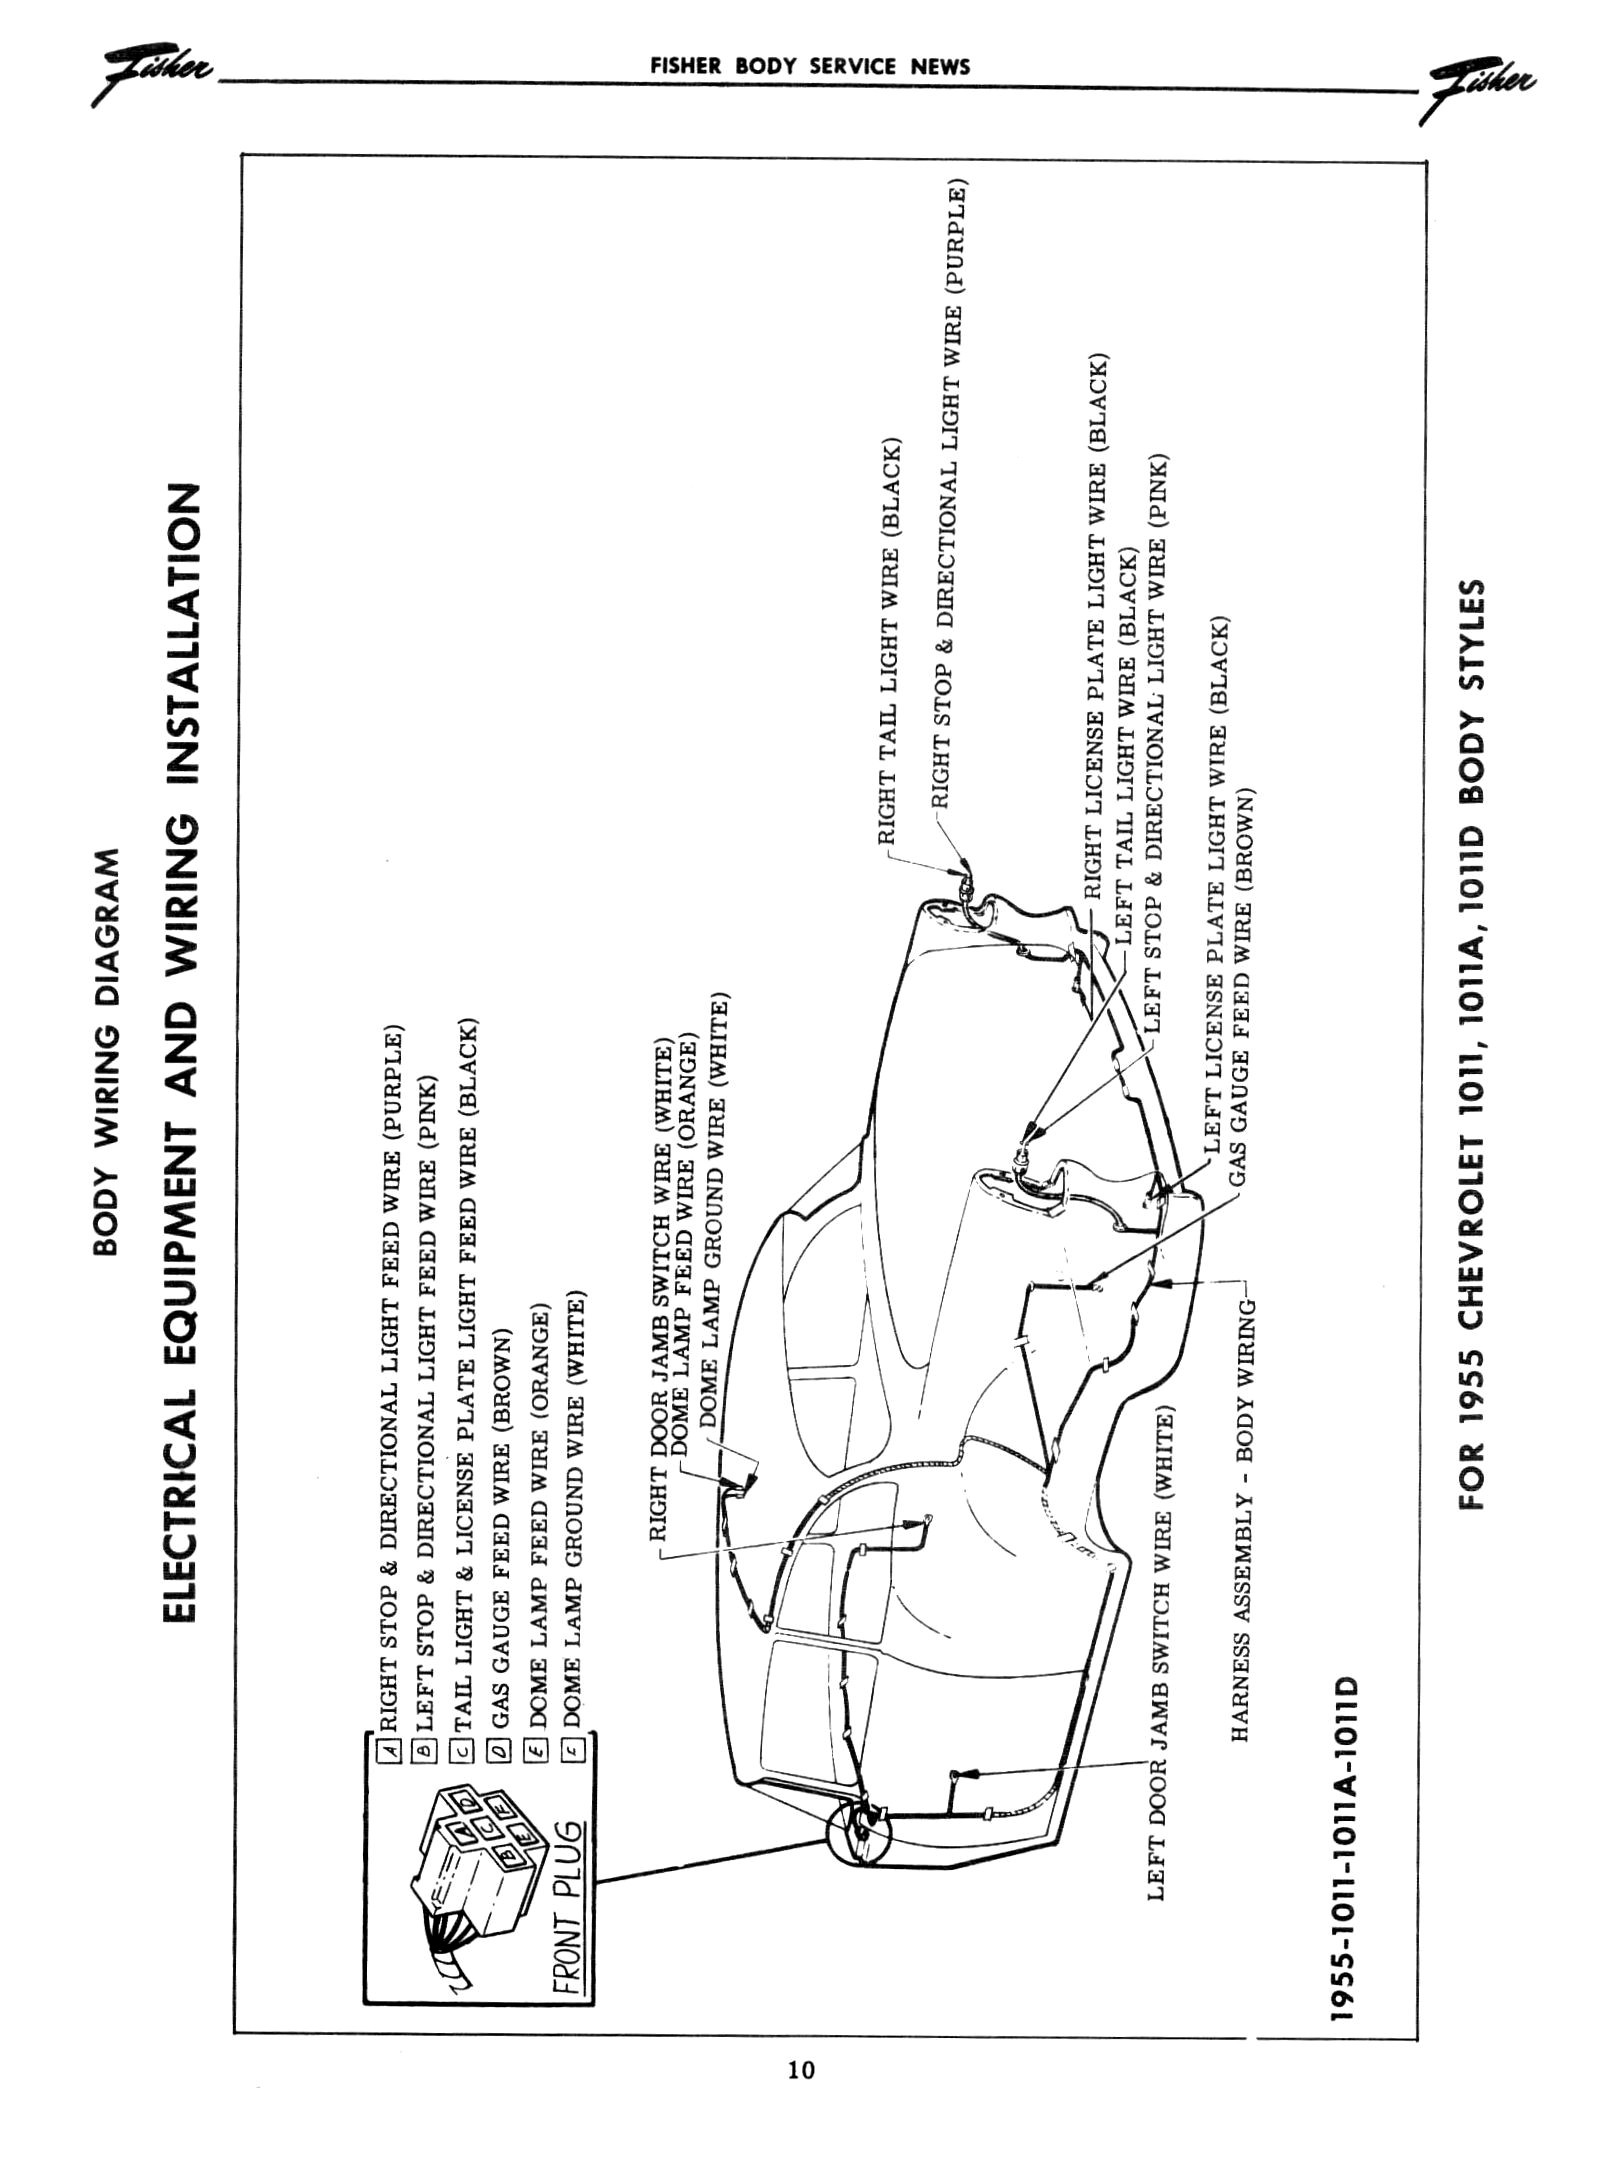 chevy dome light wiring diagram vehicle chevy wiring